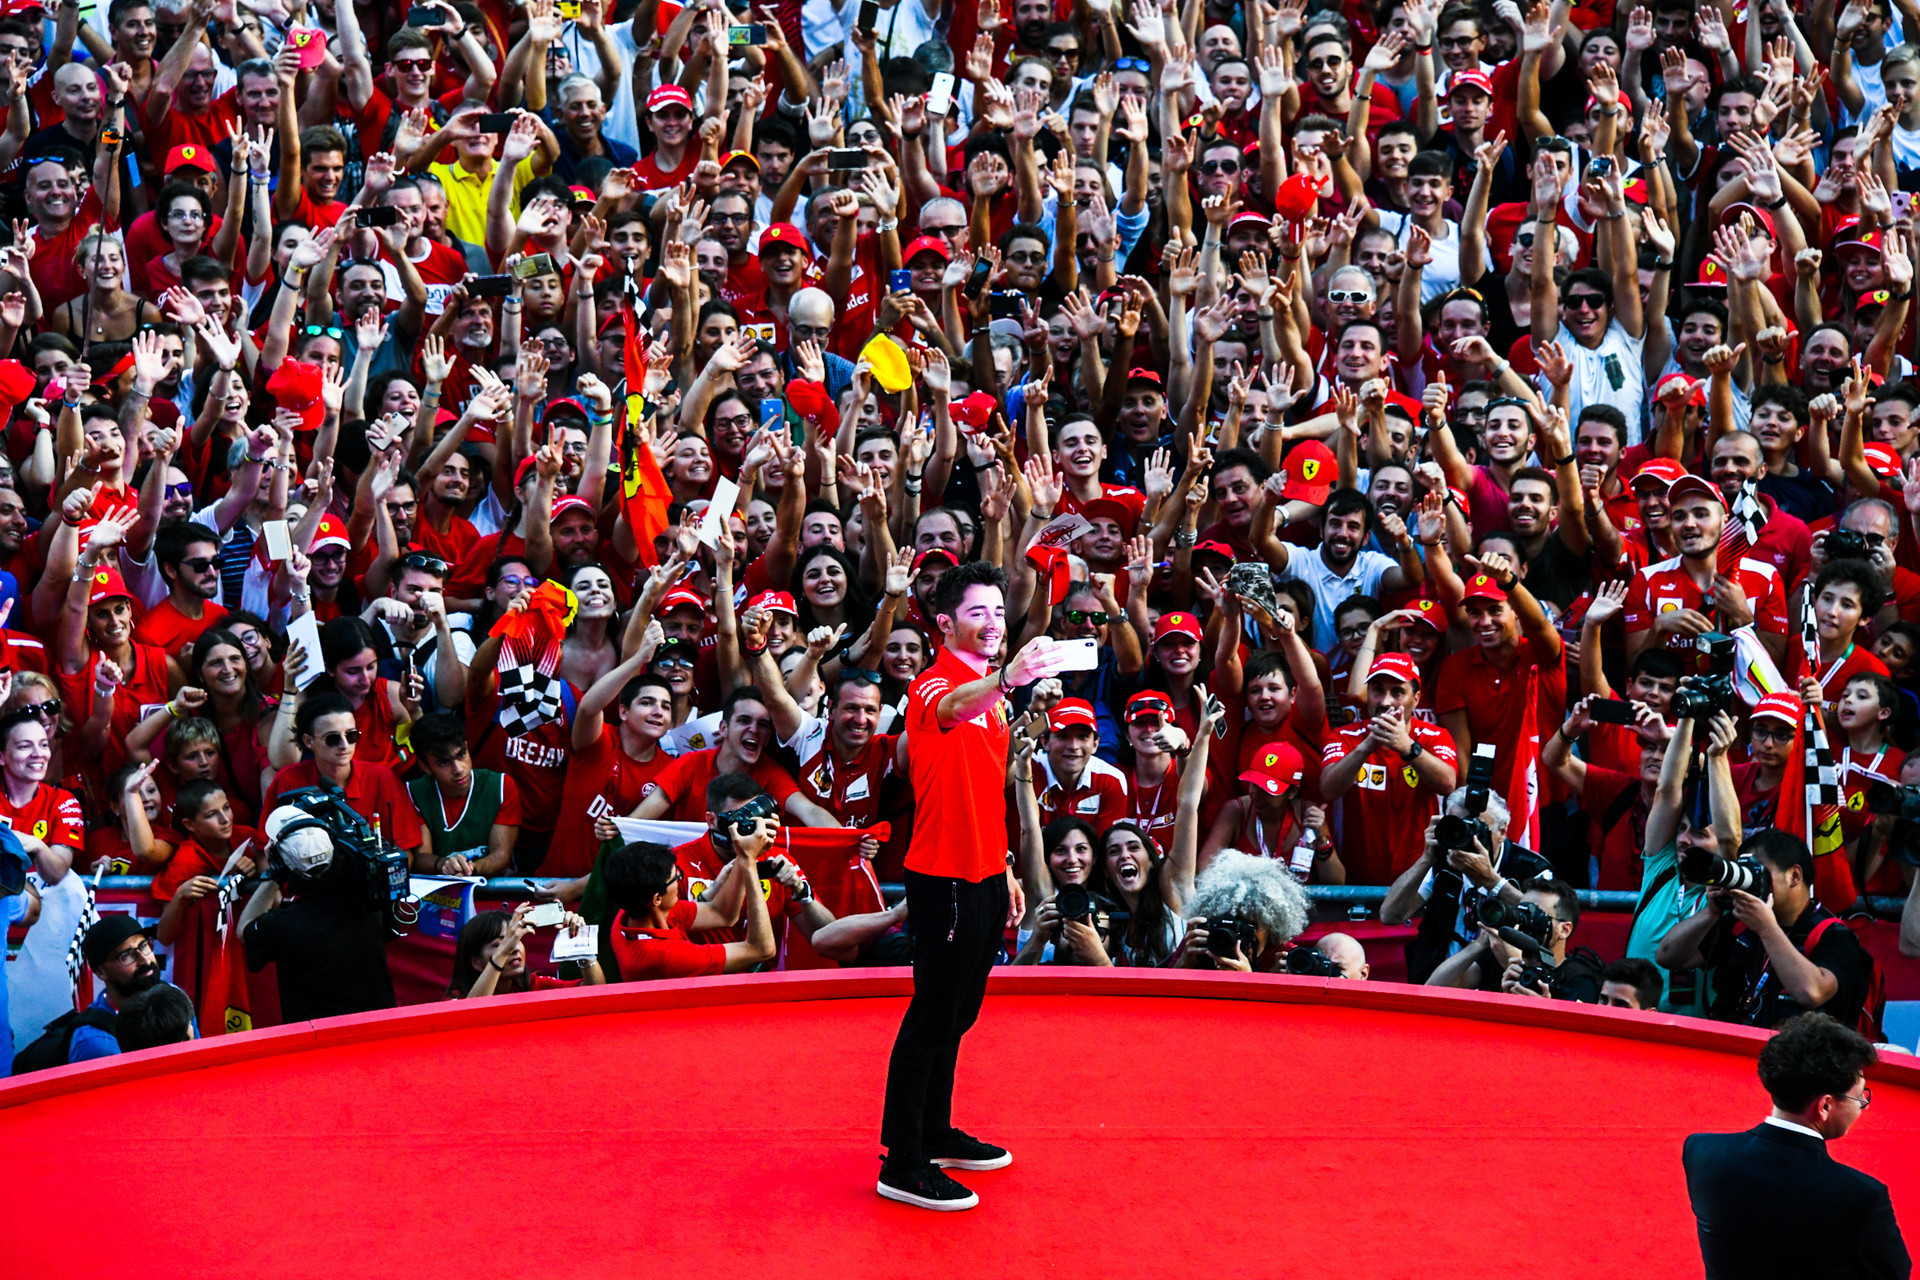 2019 Ferrari 90 Years celebration at Milan | 4 Sept 2019 website 7.jpg